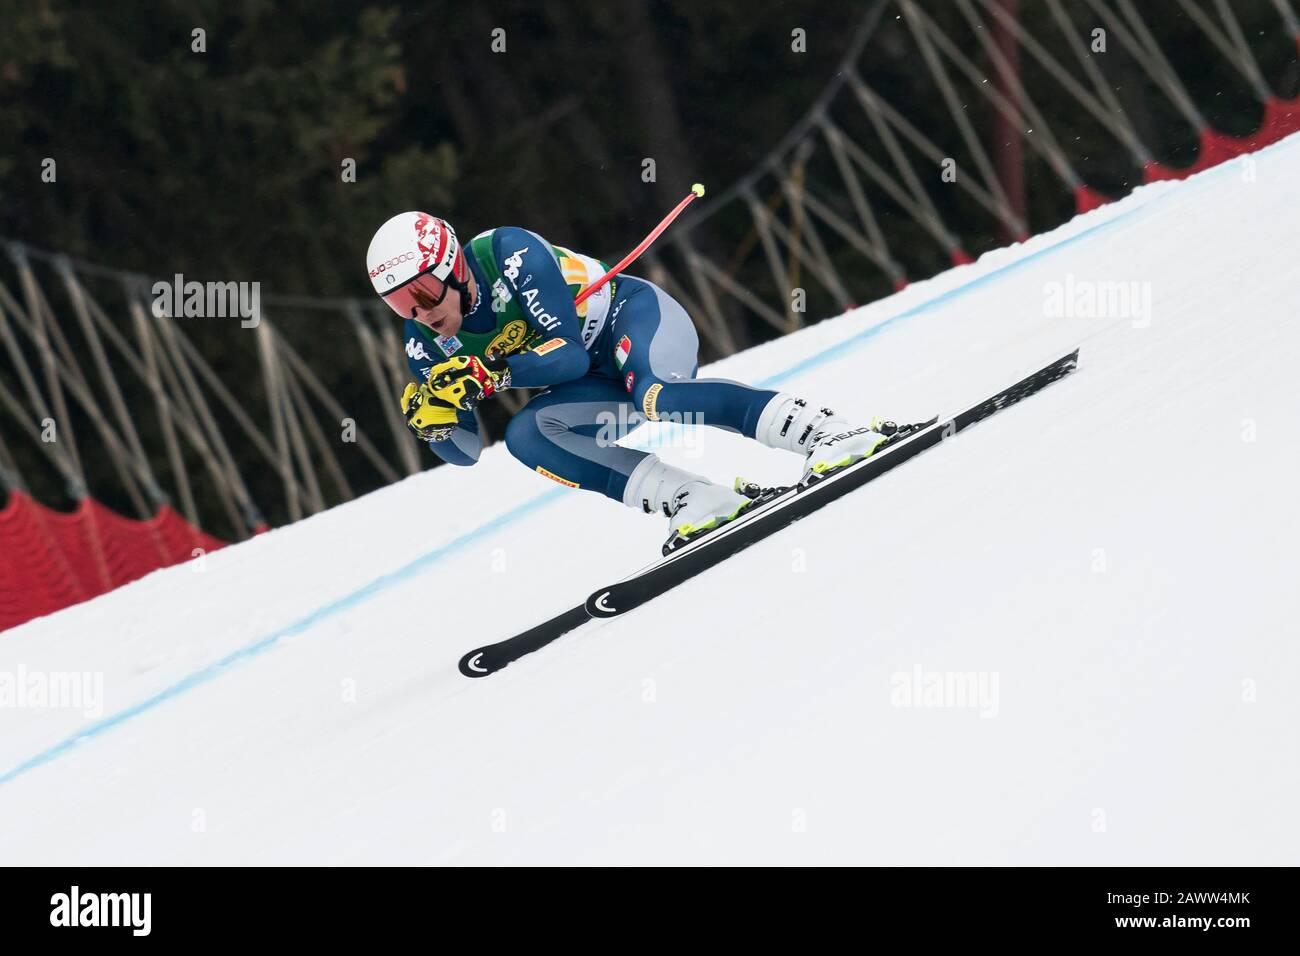 Val Gardena, Italy 20 December 2019. Casse Mattia (Ita) competing in the Audi Fis Alpine Skiing World Cup Men's Super-G Race  on the Saslong Course in Stock Photo